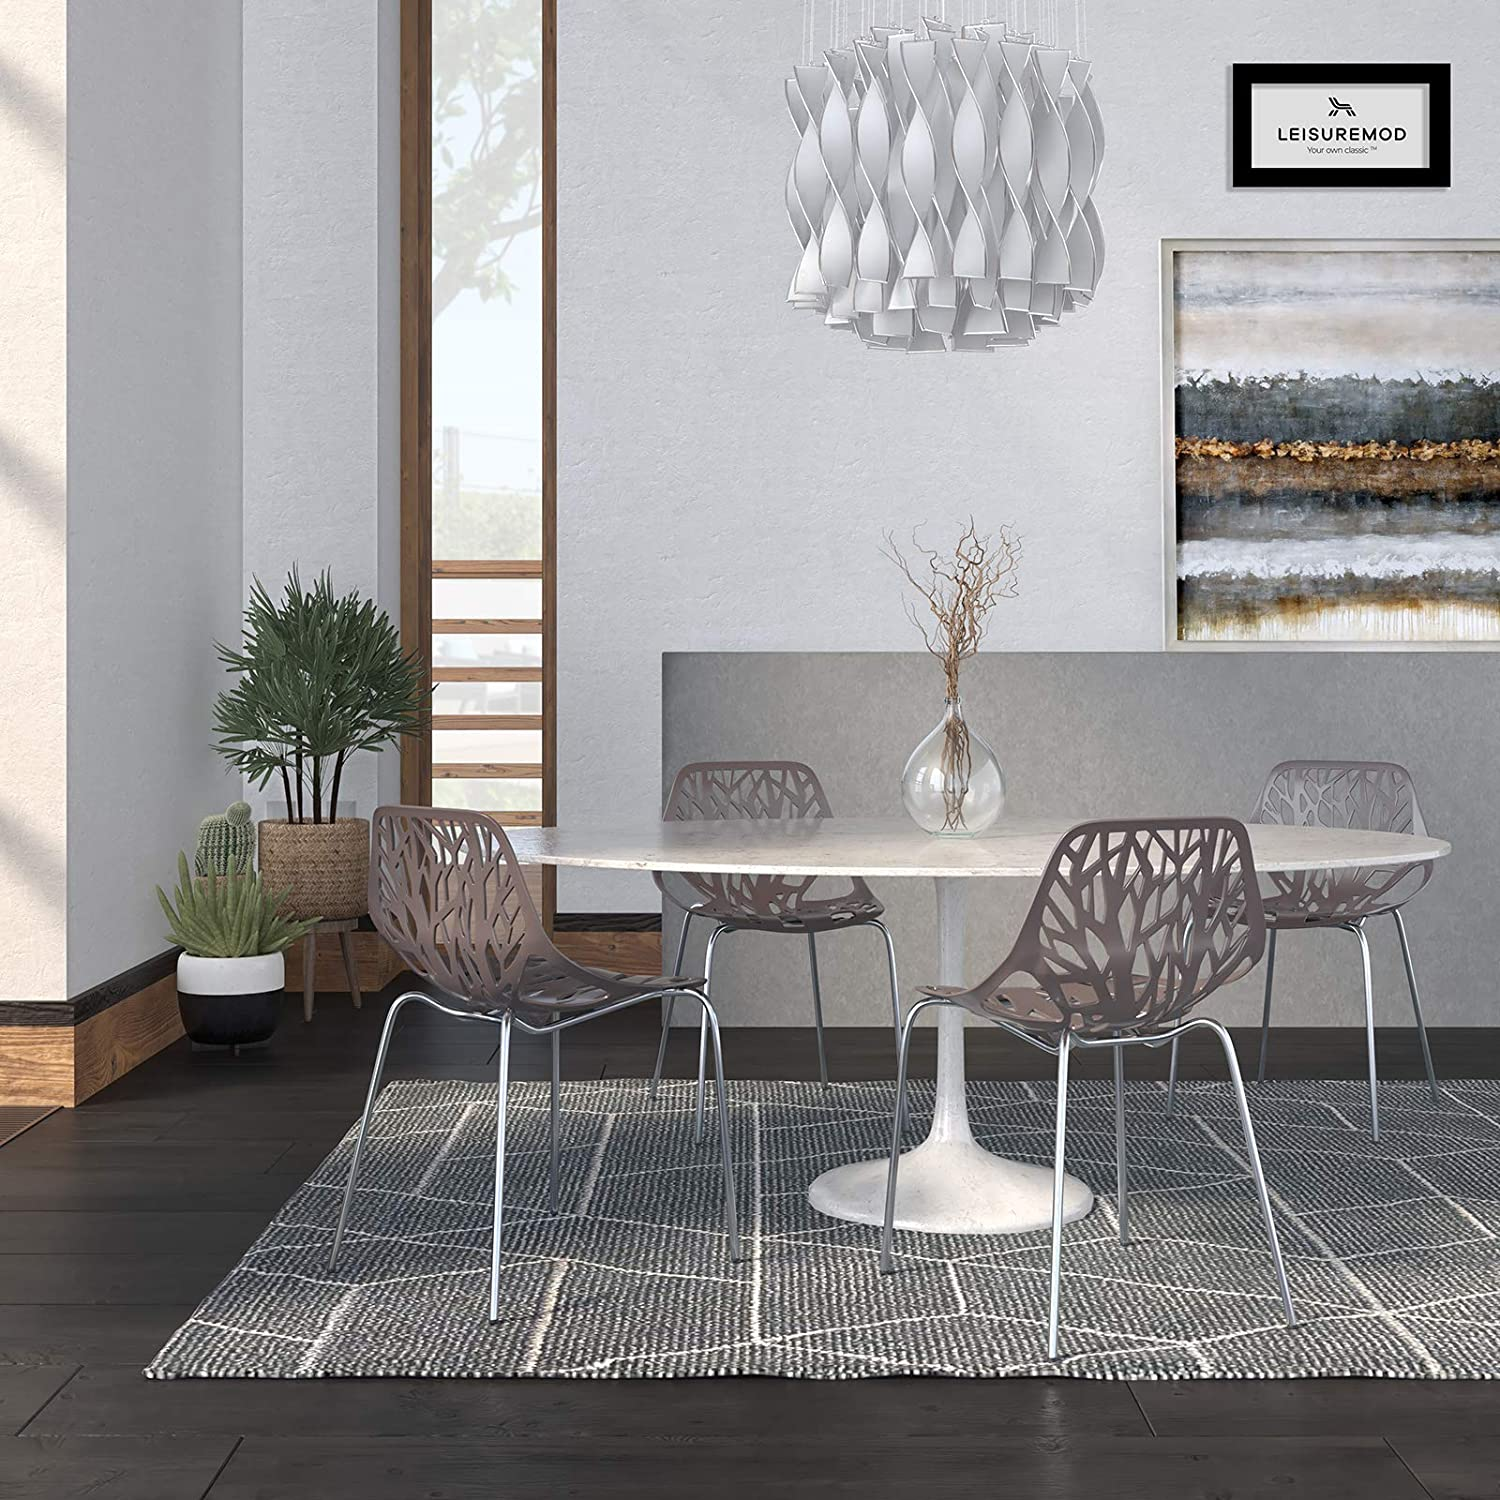 LeisureMod Forest Modern Dining Chair with Chromed Legs, Set of 4 Taupe